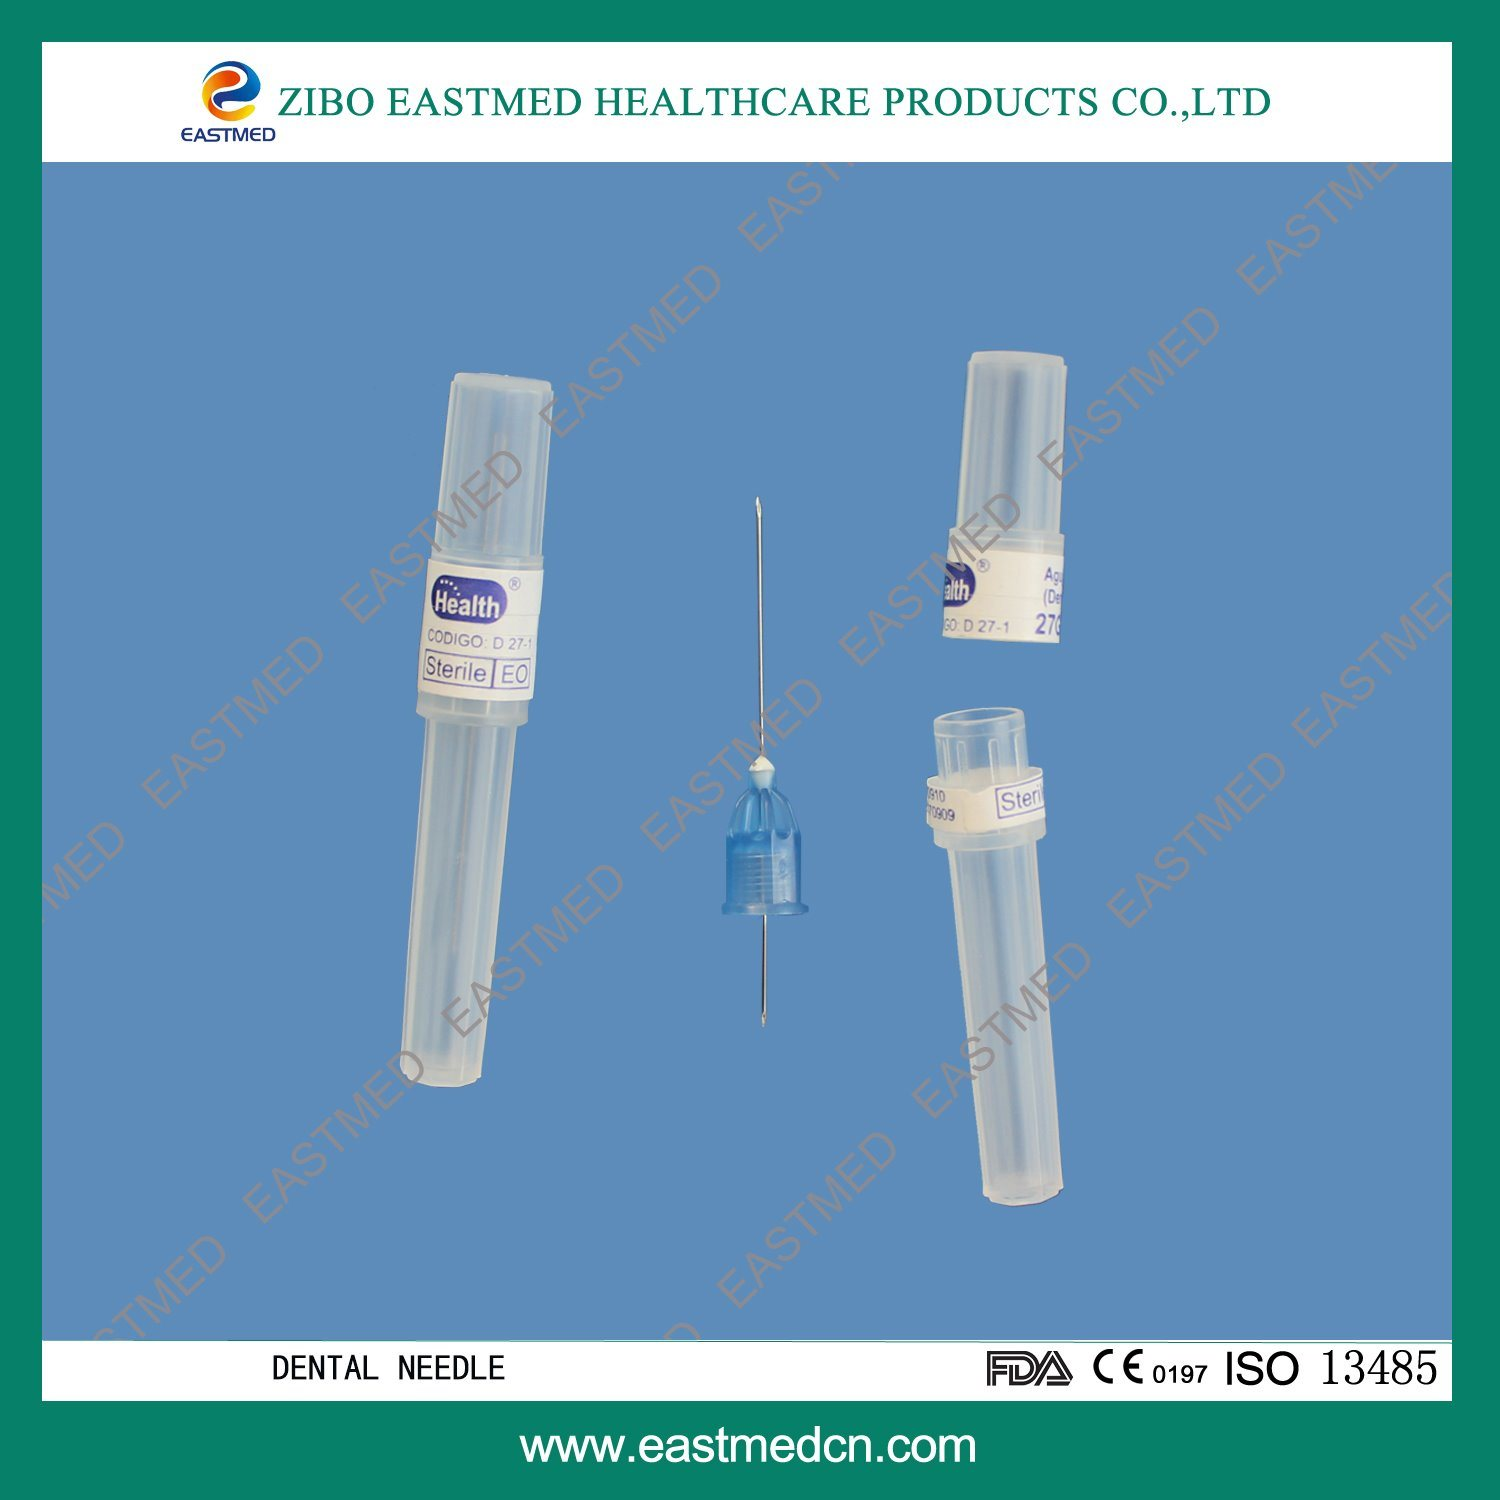 27g/30g Disposable Dental Needle